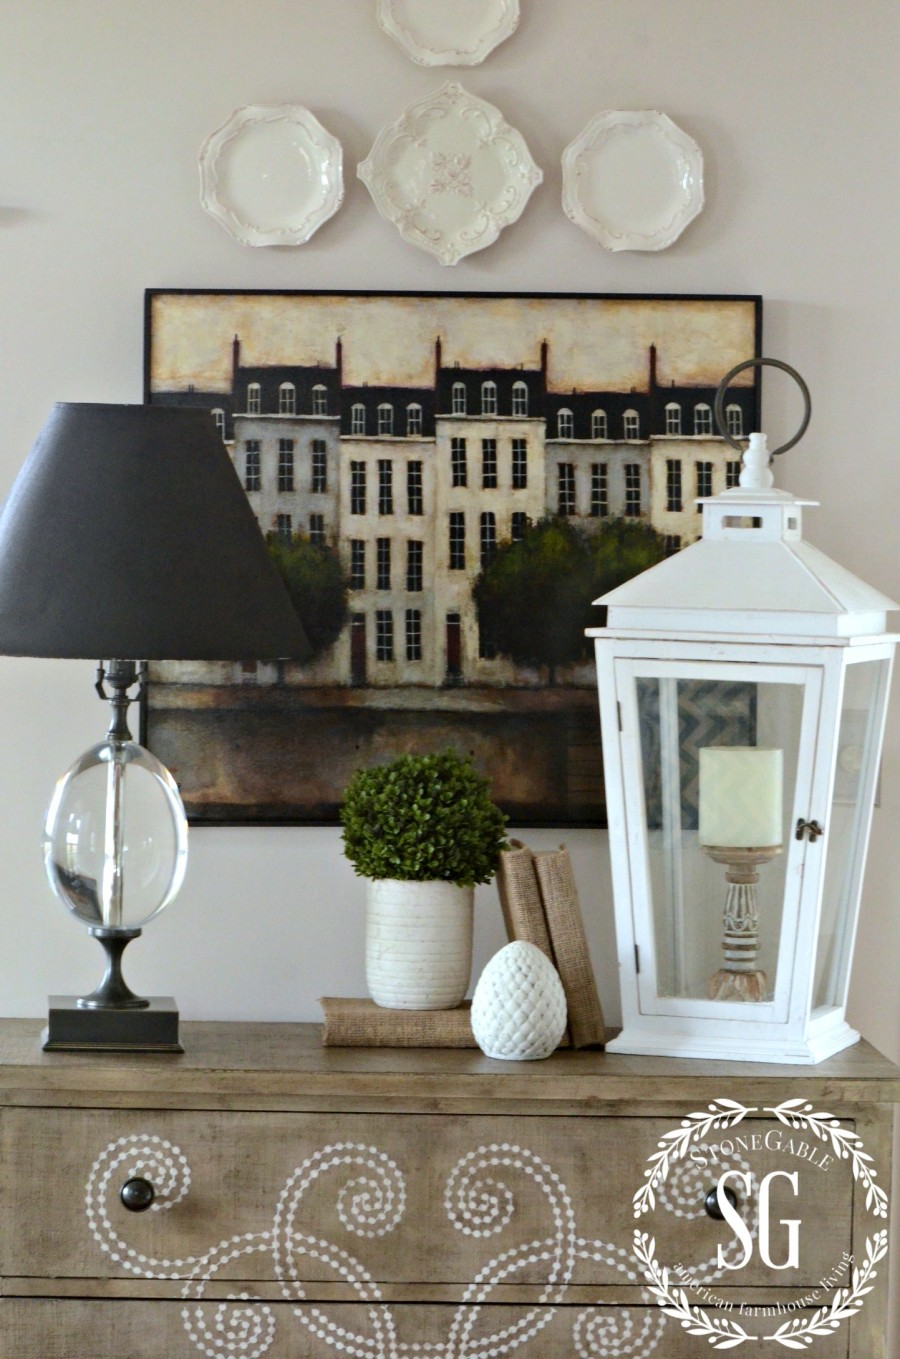 How To Decorate A Loft Living Room Upstairs: LOVING LANTERNS... TIPS FOR DECORATING WITH THEM